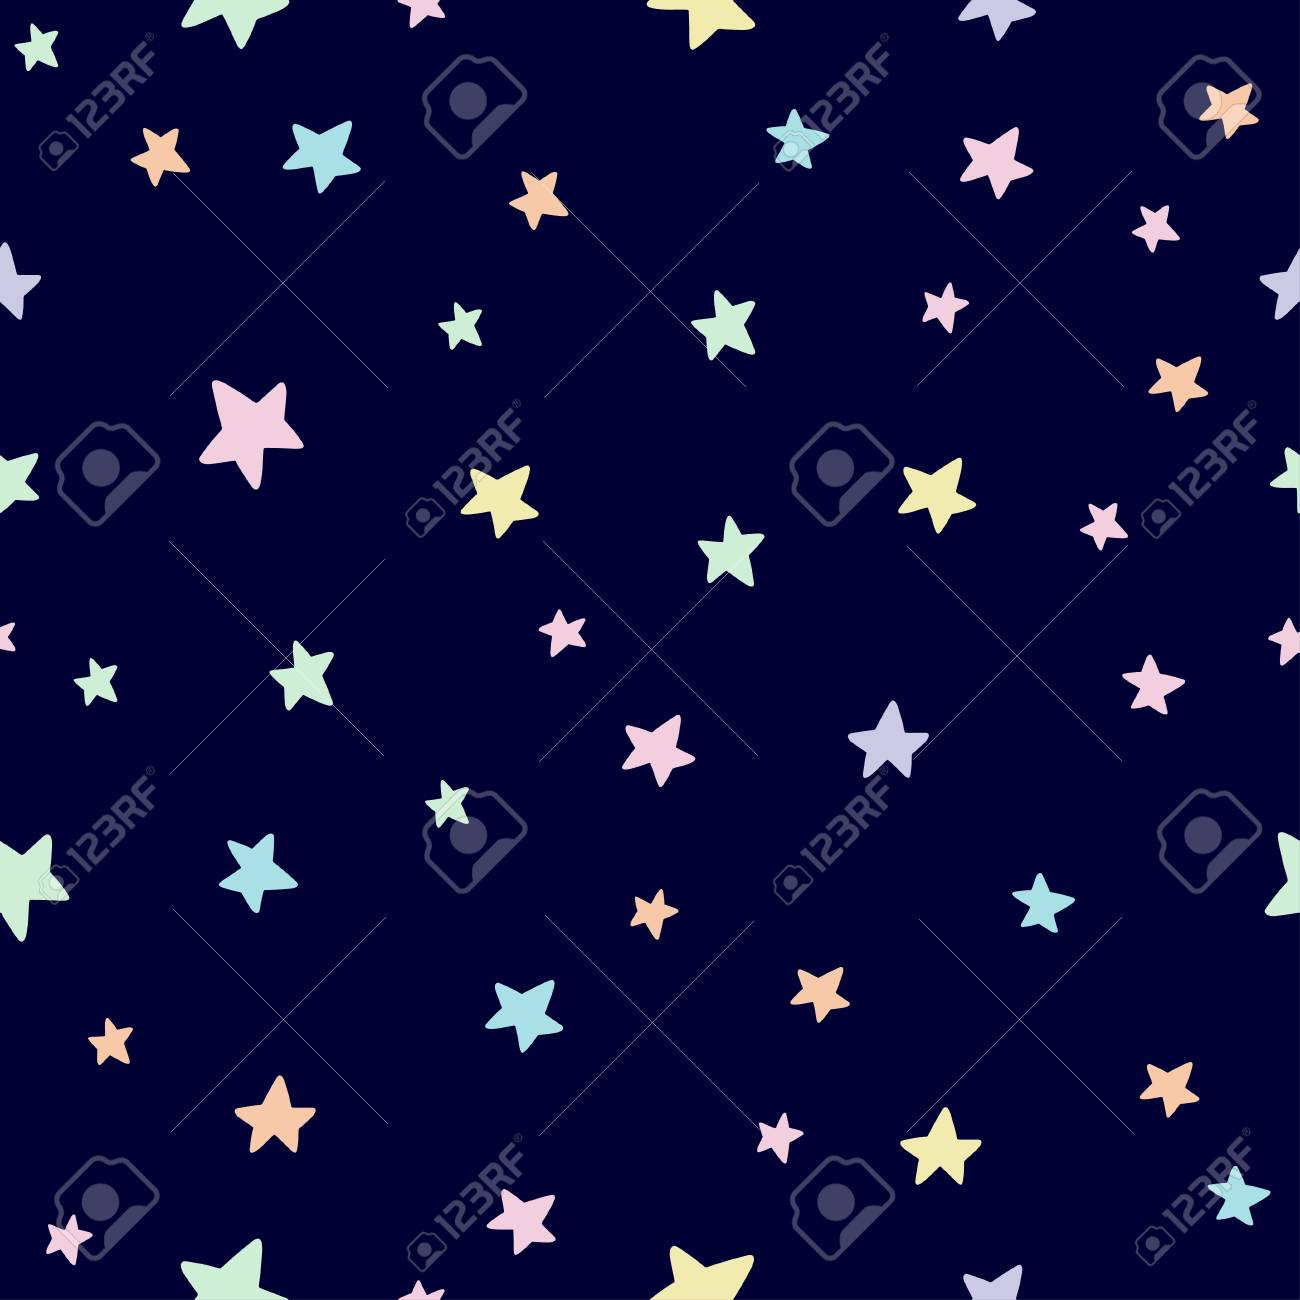 Cute Star Seamless Pattern In Pastel Colors On Dark Background Baby And Child Clothing